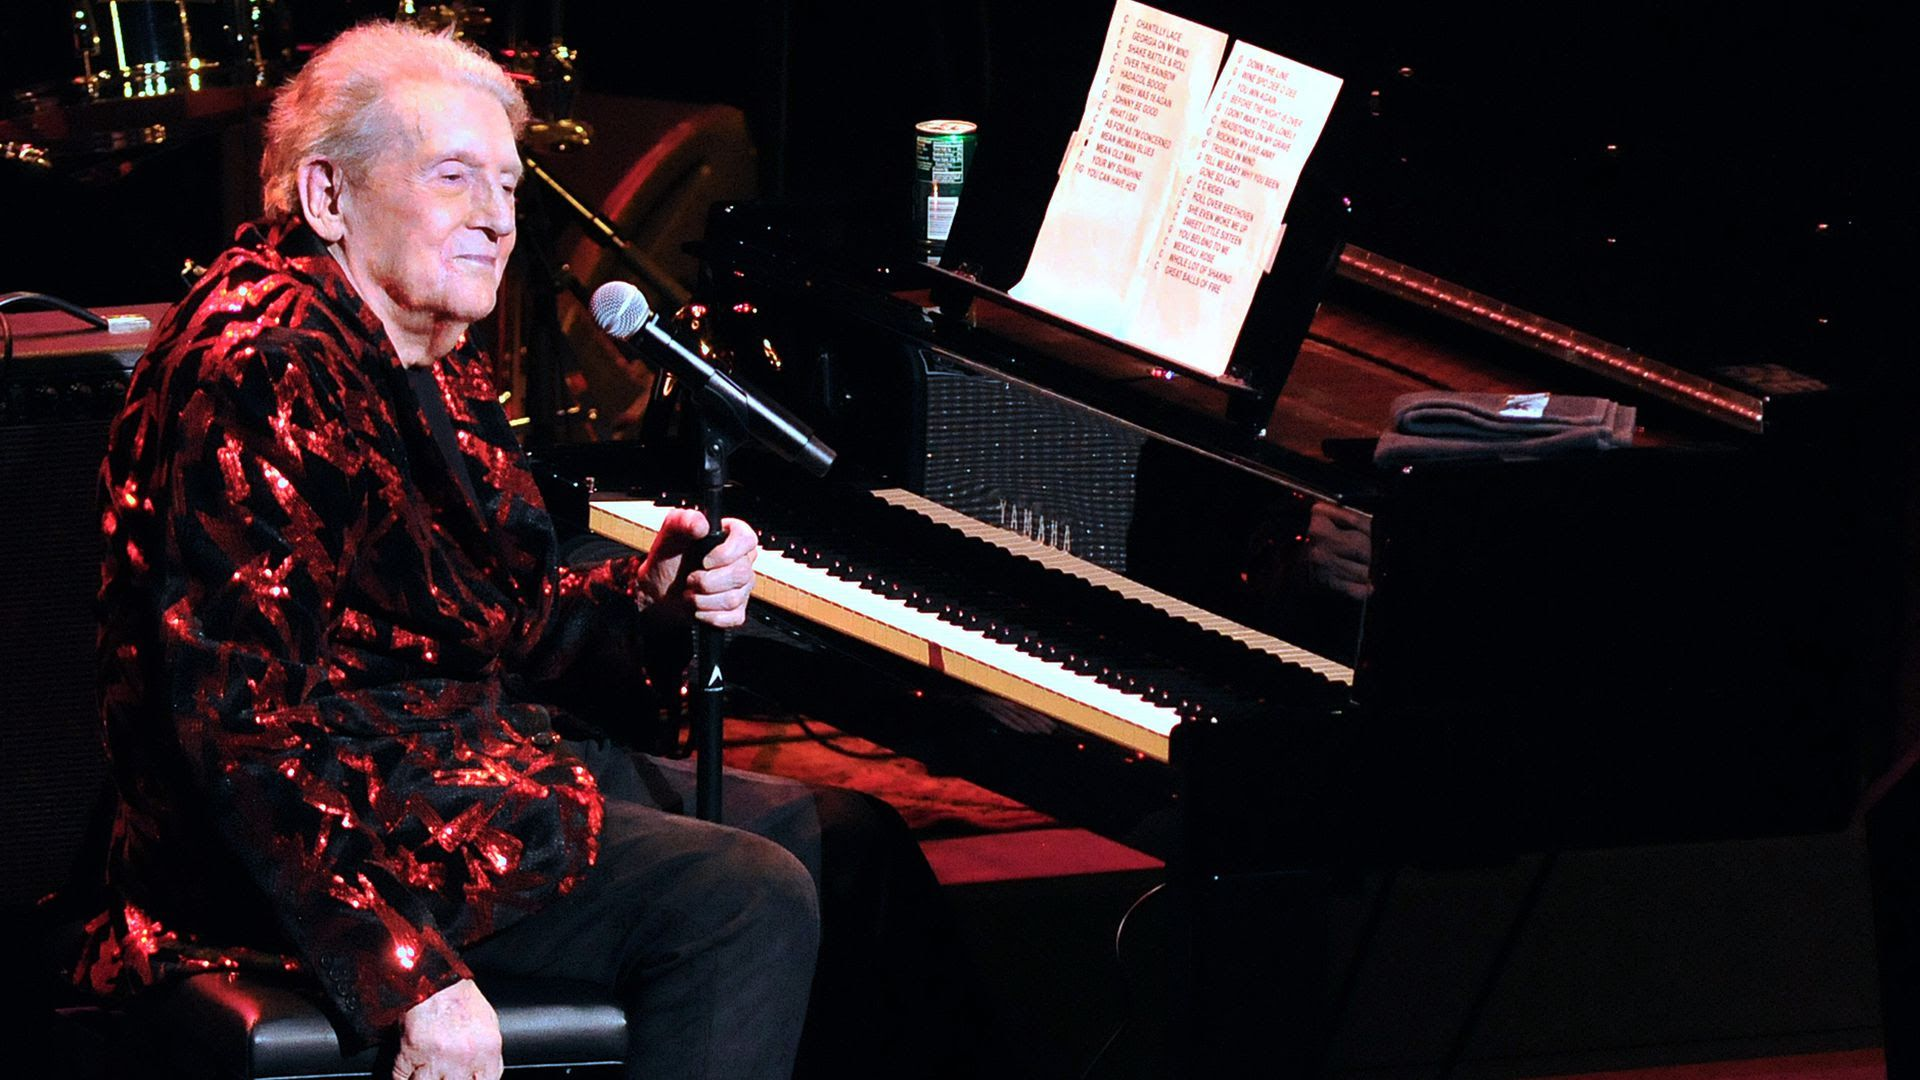 Jerry Lee Lewis sits in front of a piano at the Van Wezel Performing Arts Hall in Sarasota.